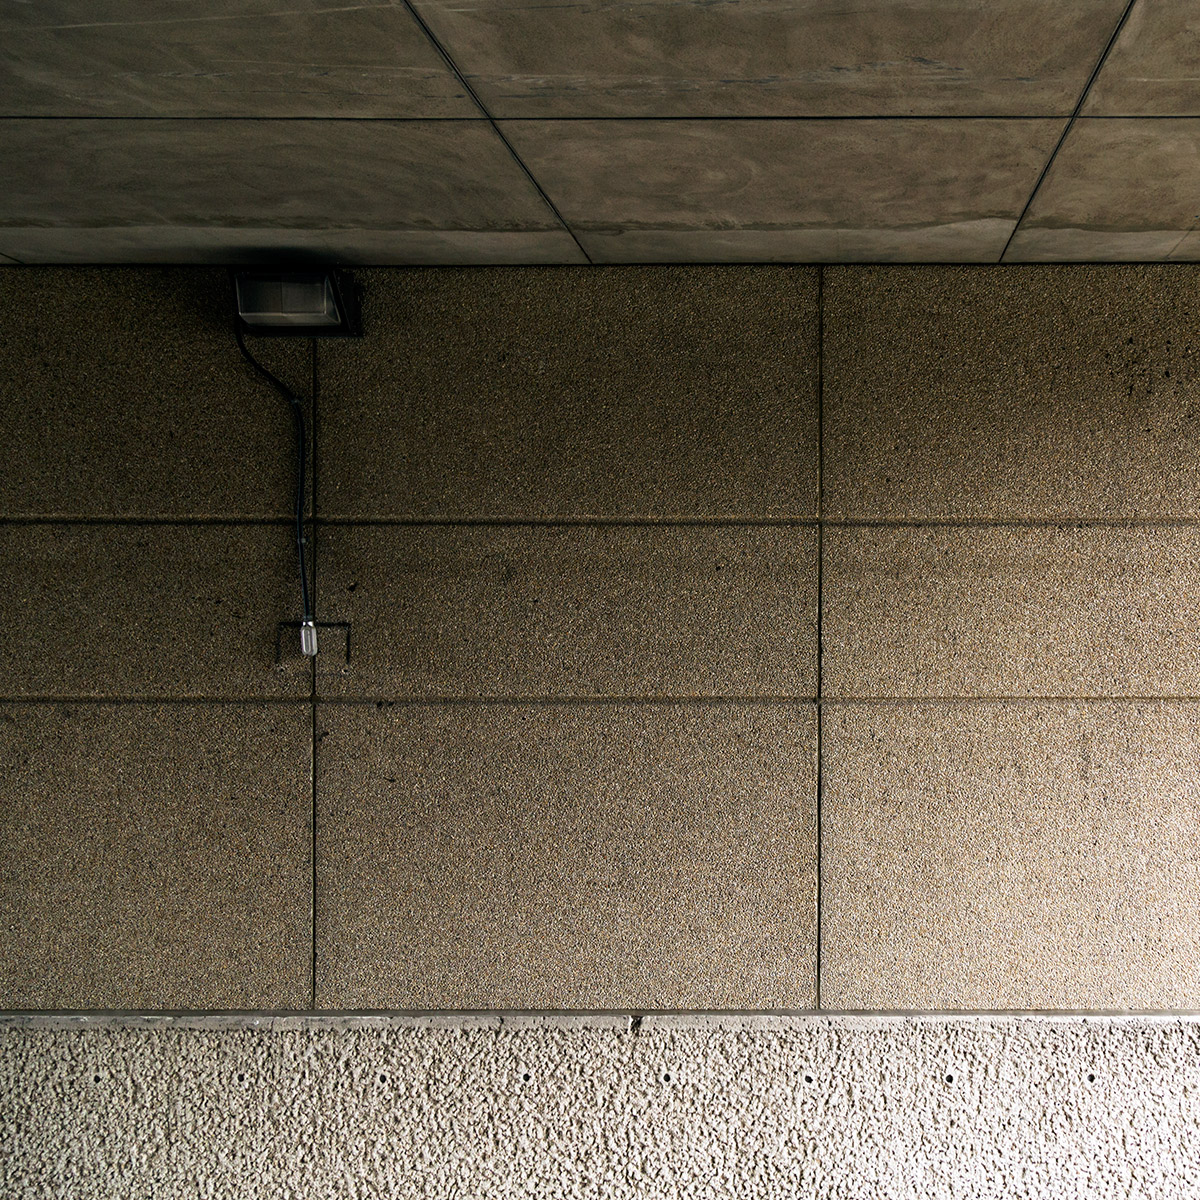 20150424. The lamp at a confluence of concrete. Minimal Aestheti